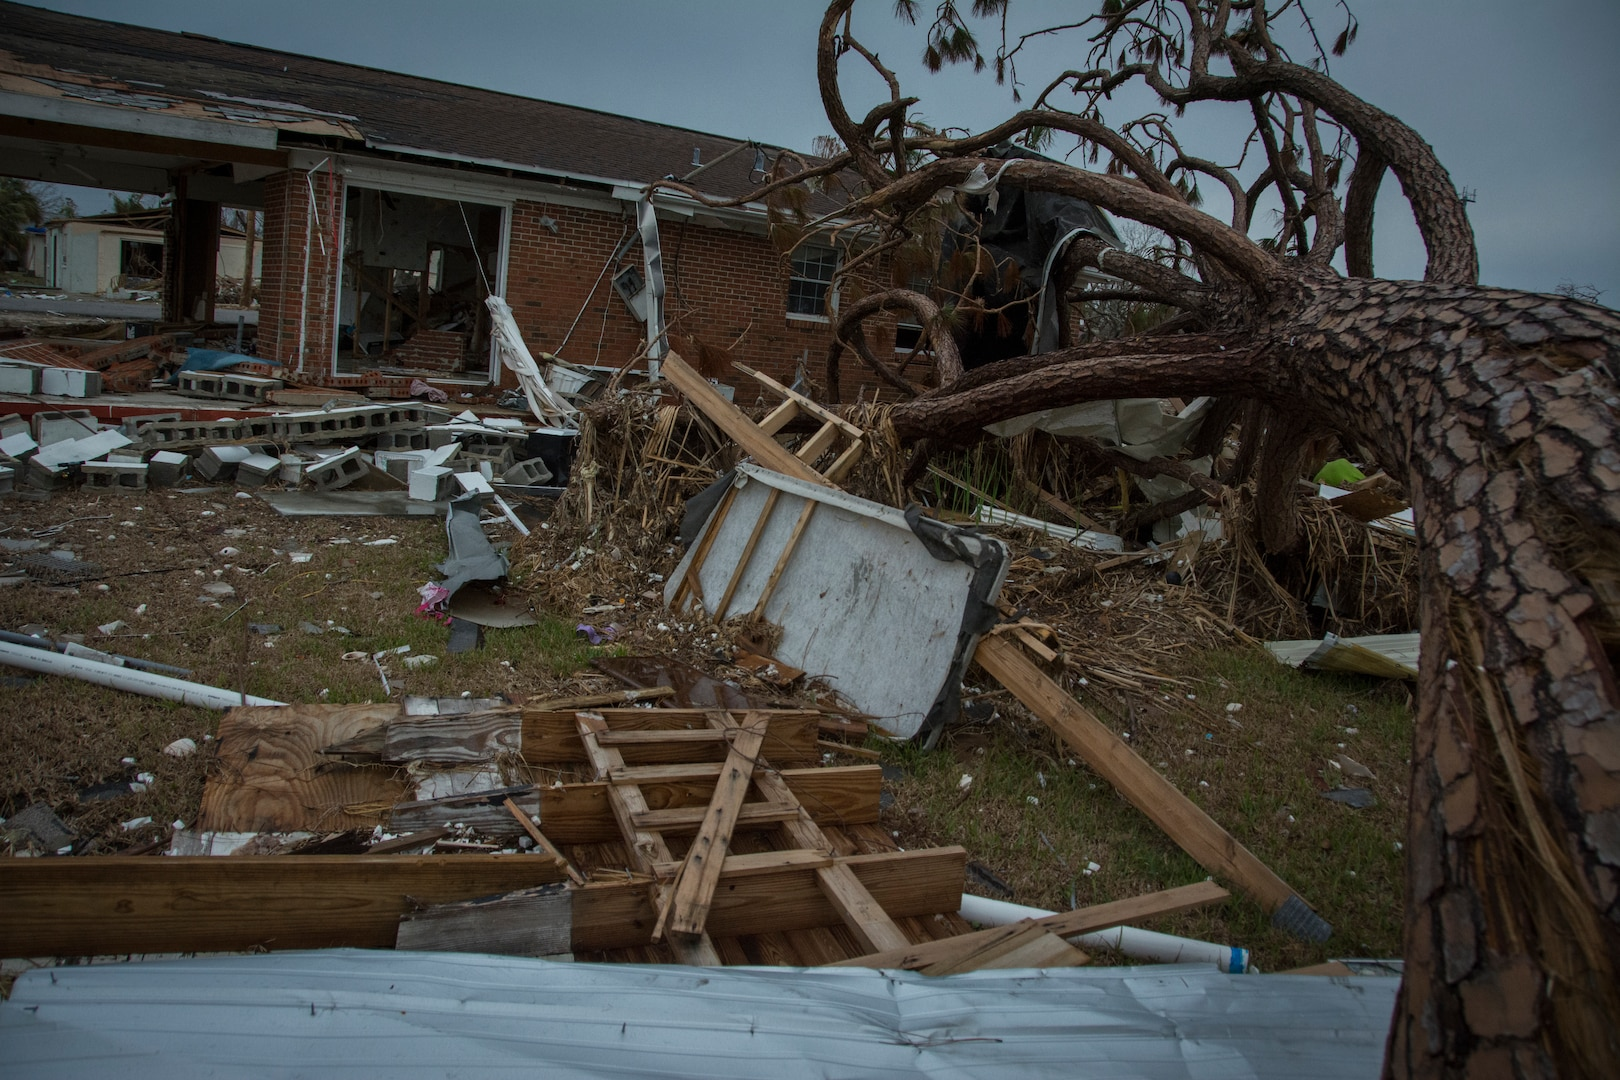 Debris fills a yard in front of a house.